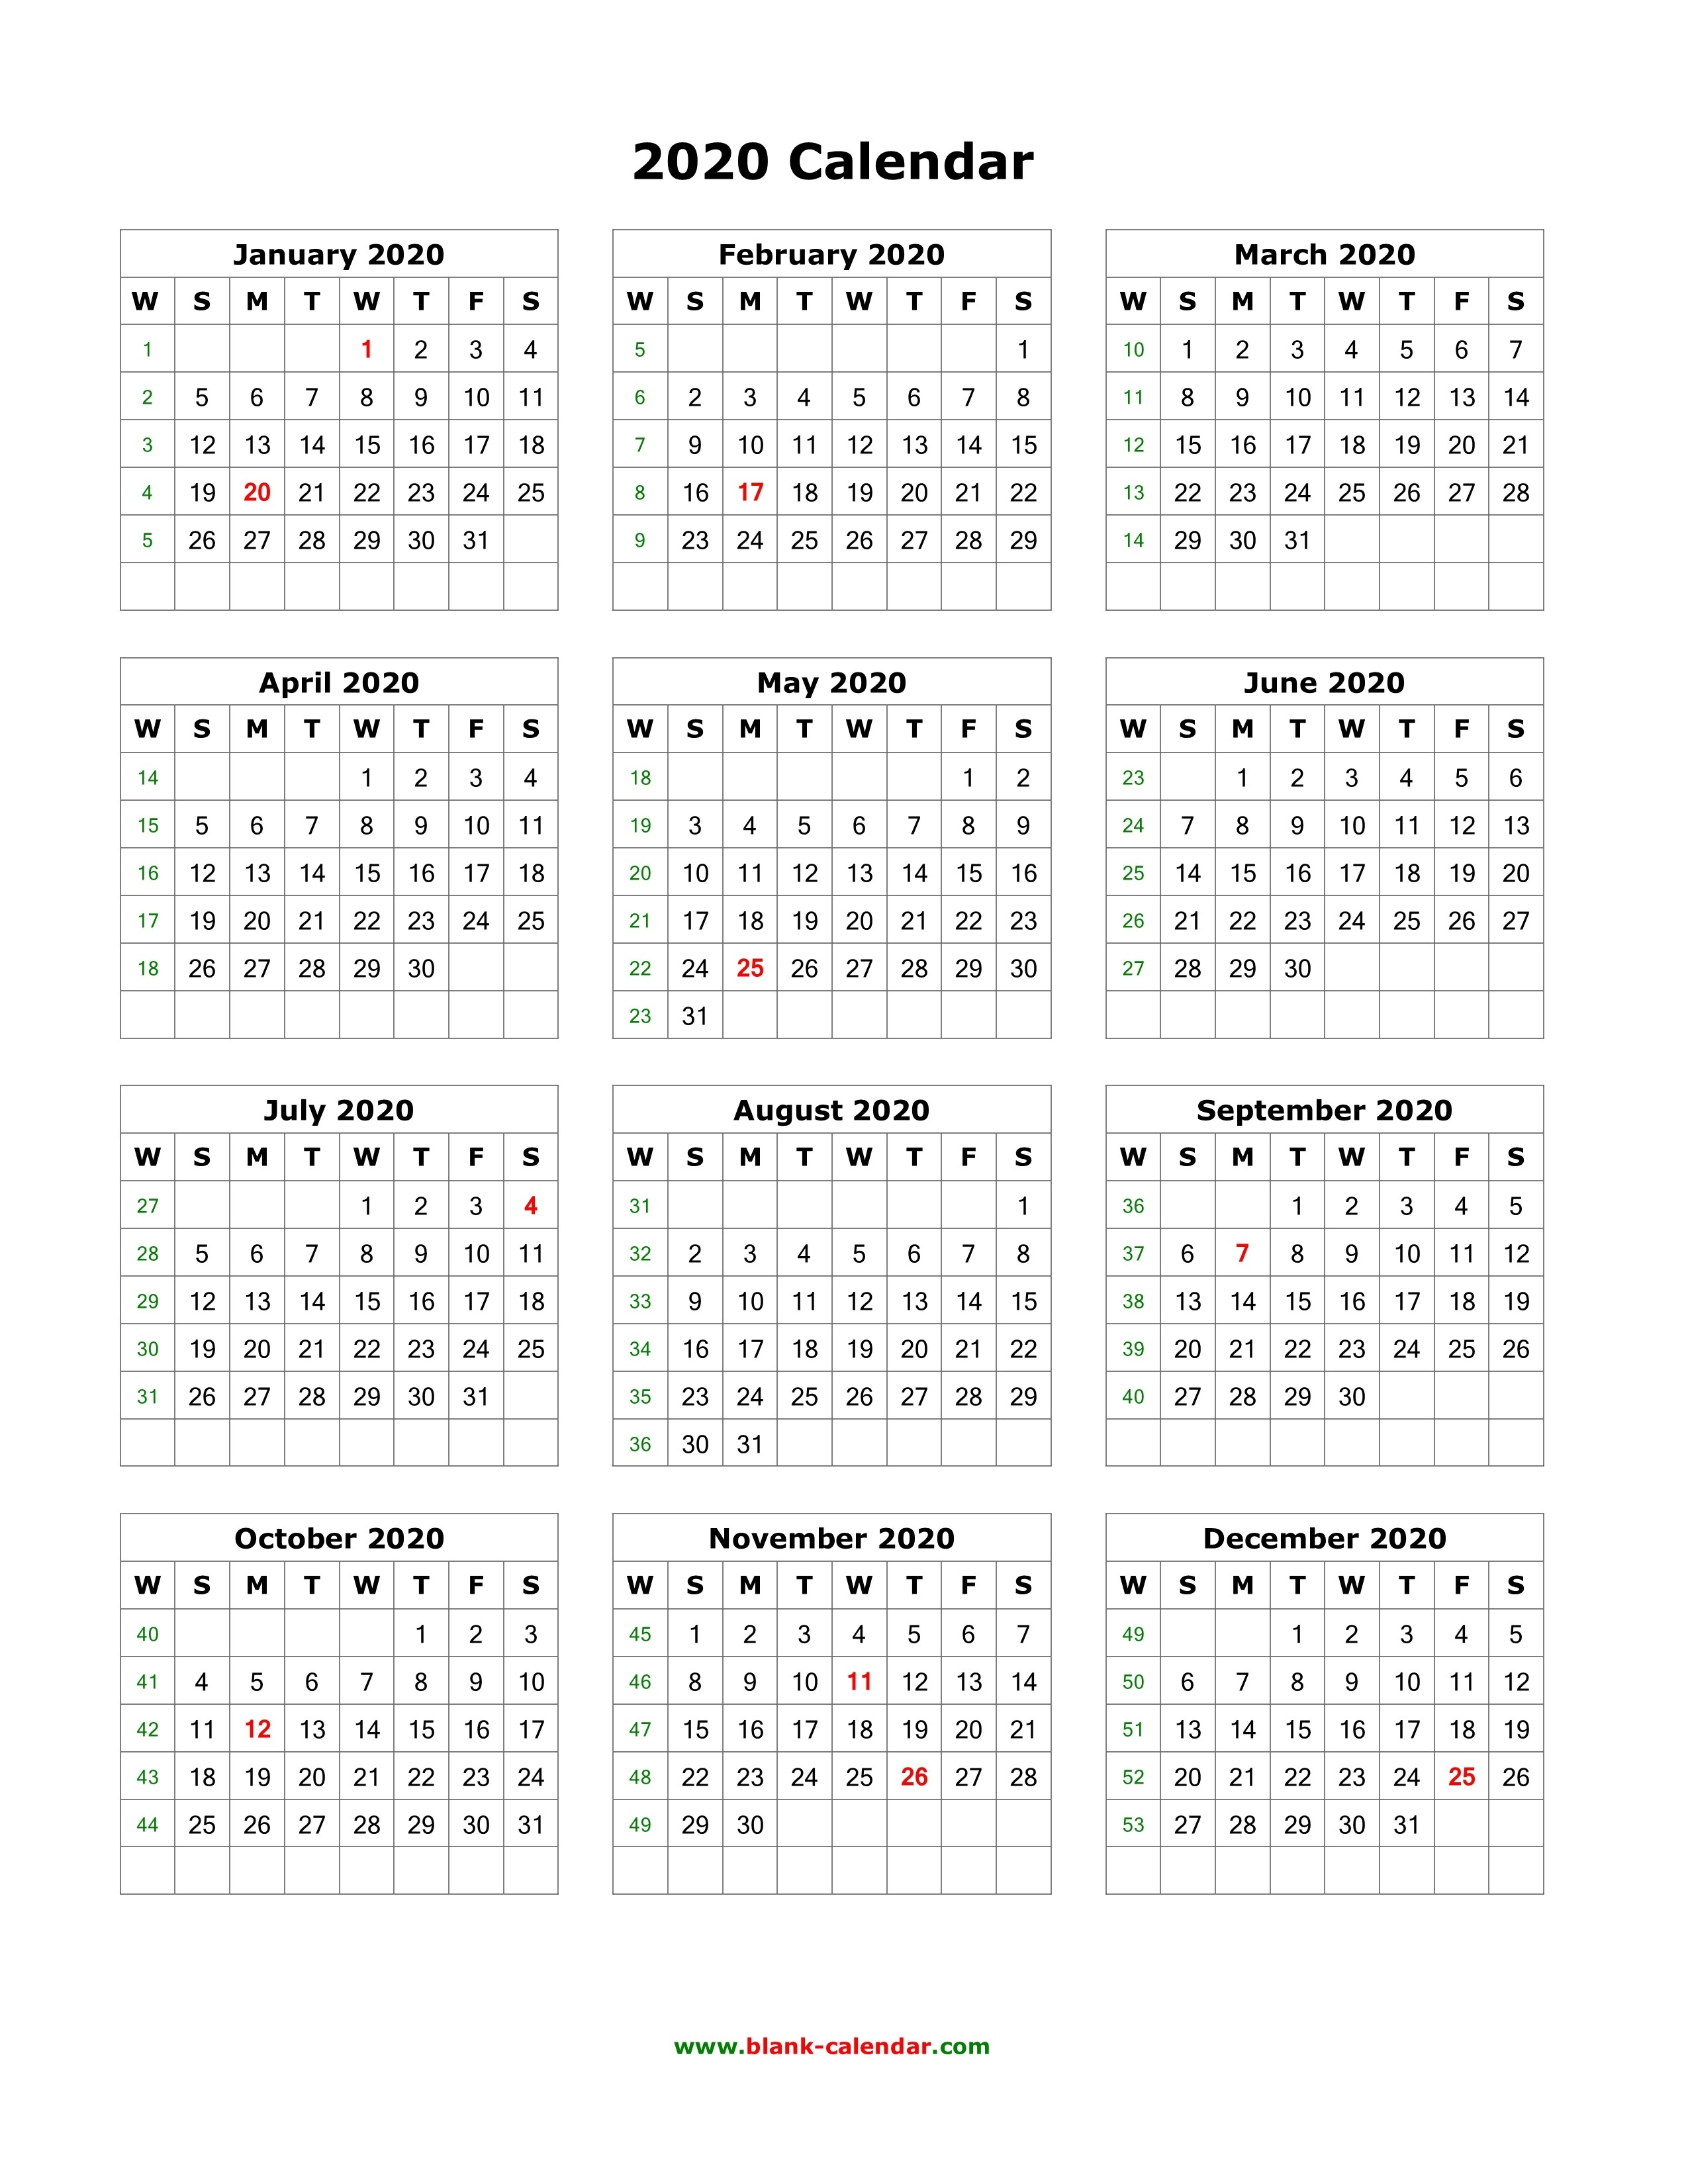 Download Blank Calendar 2020 (12 Months On One Page, Vertical)-12 Month Blank Calendar 2020 Printable